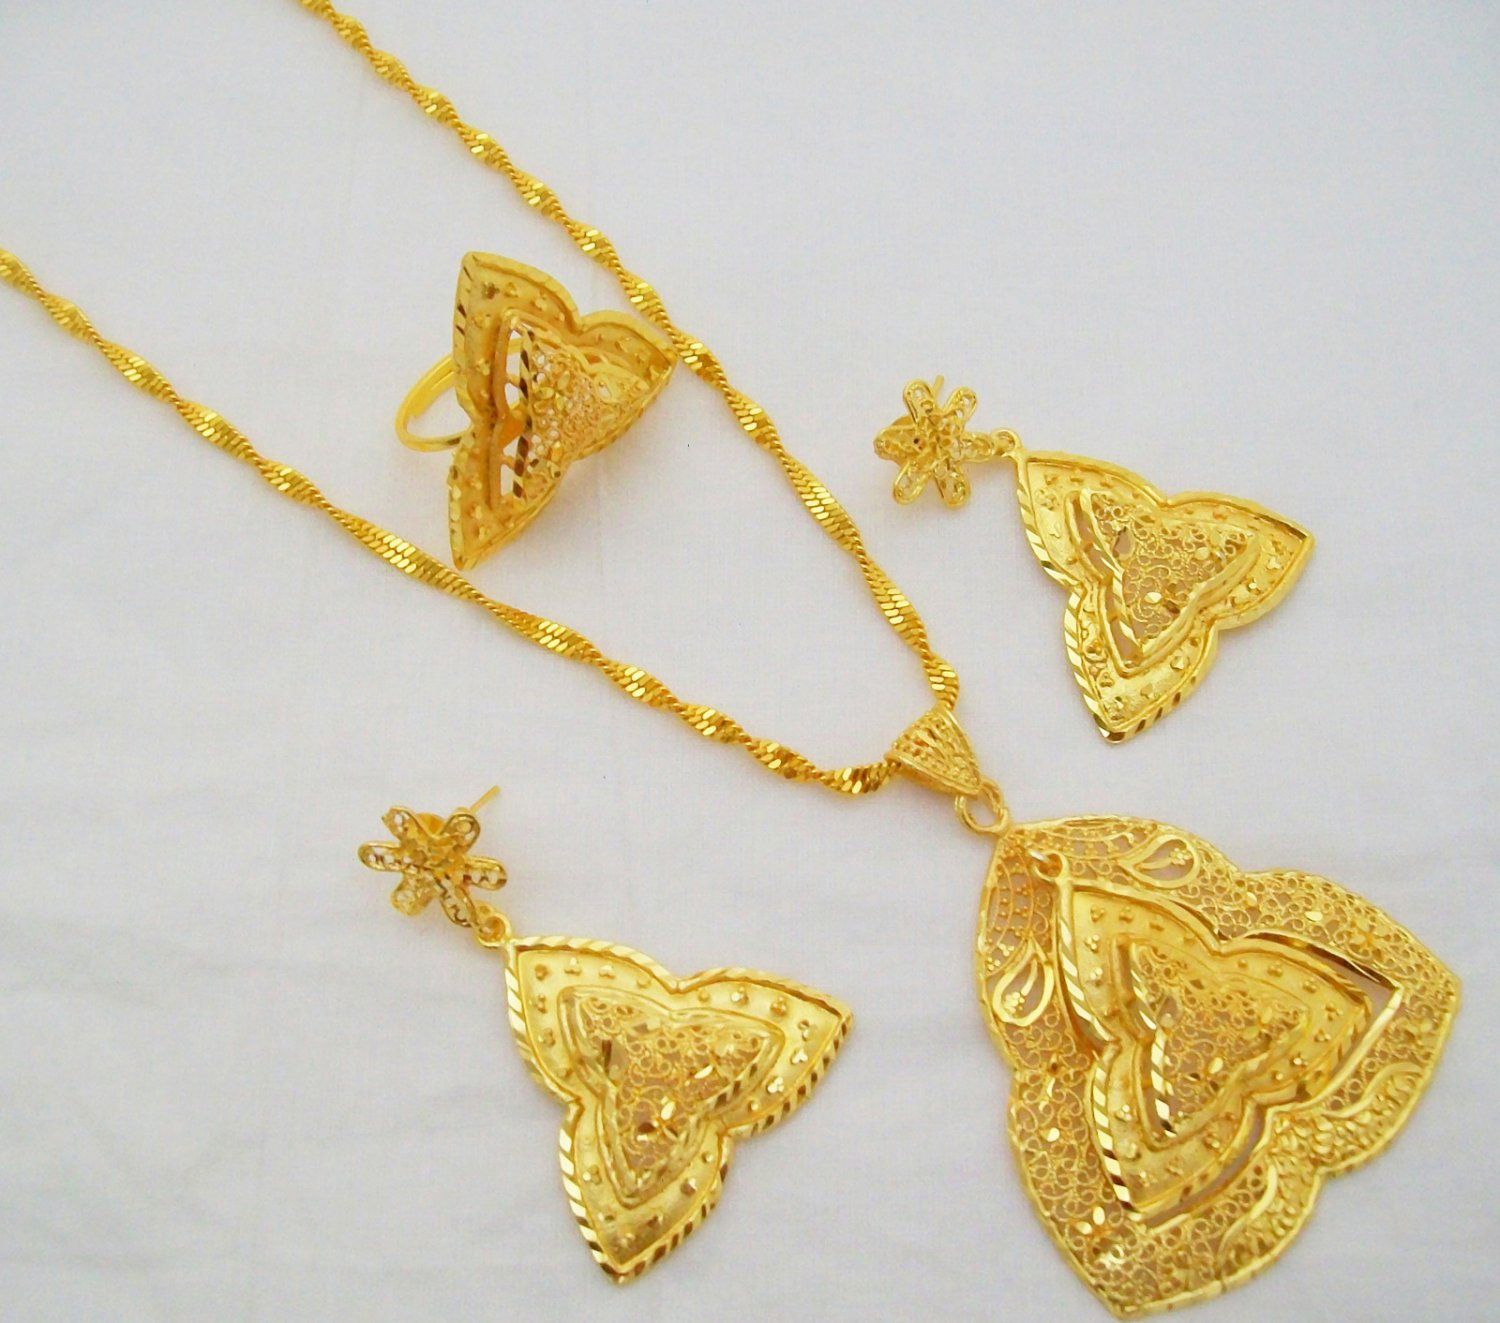 Antique Filigree Gold Plated Chain Pendant Necklace Jewelry Set